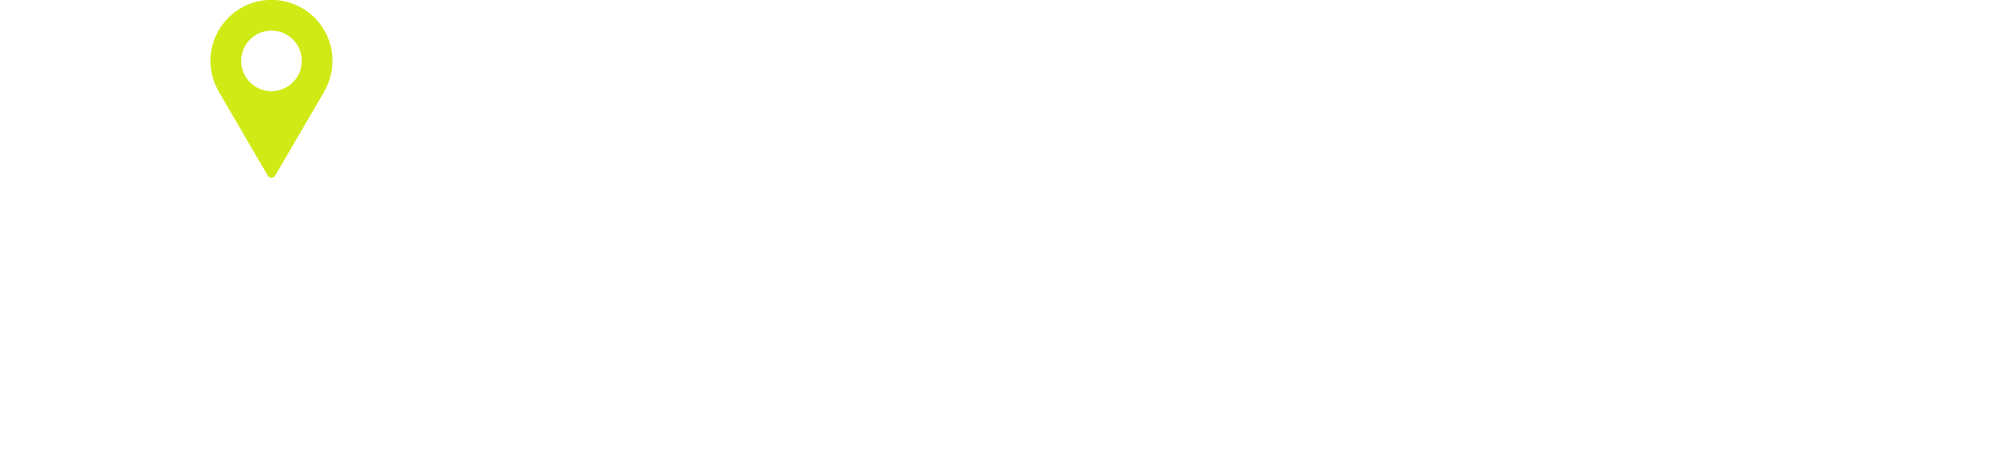 Cityworks Partner Summit